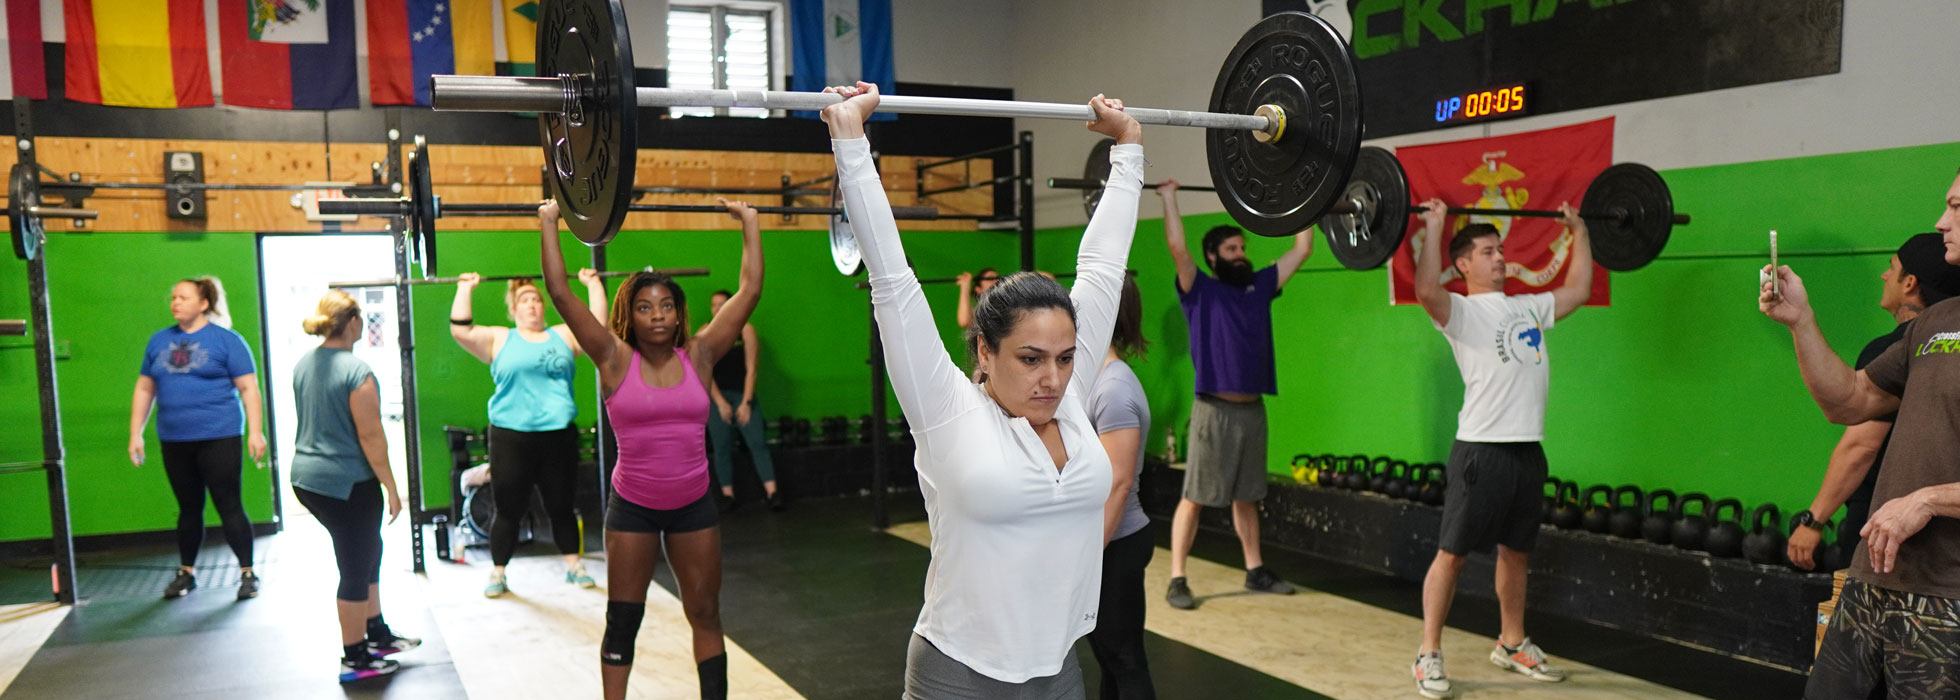 Top 5 Best Gyms To Join Near Orlando